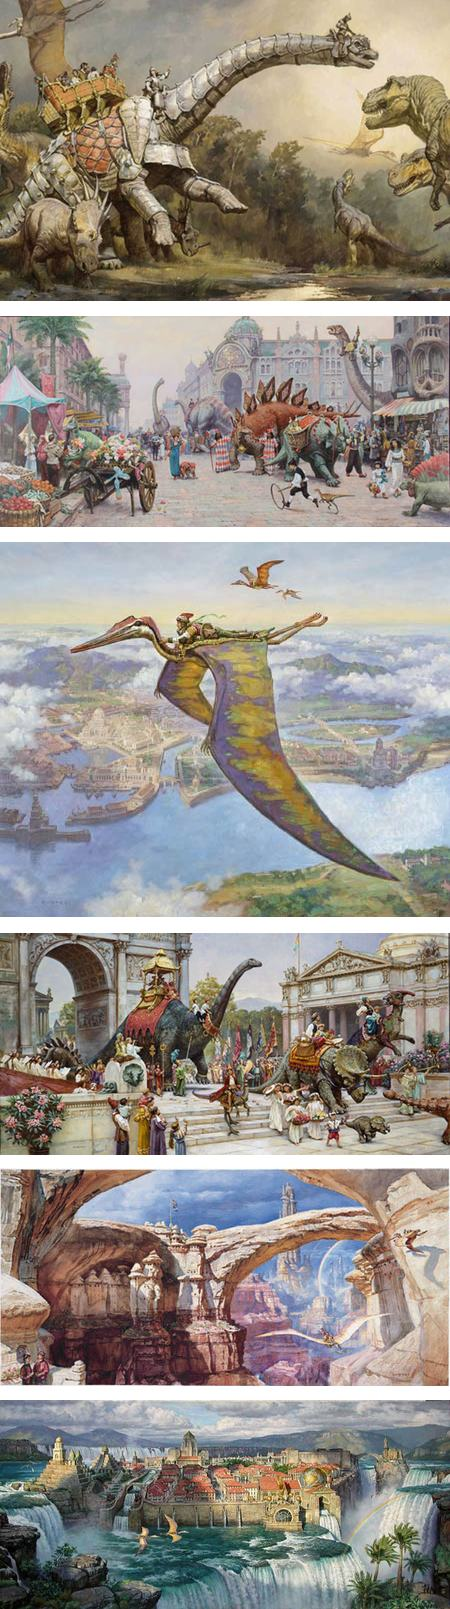 Dinotopia: The Fantastical Art of James Gurney at Stamford Museum